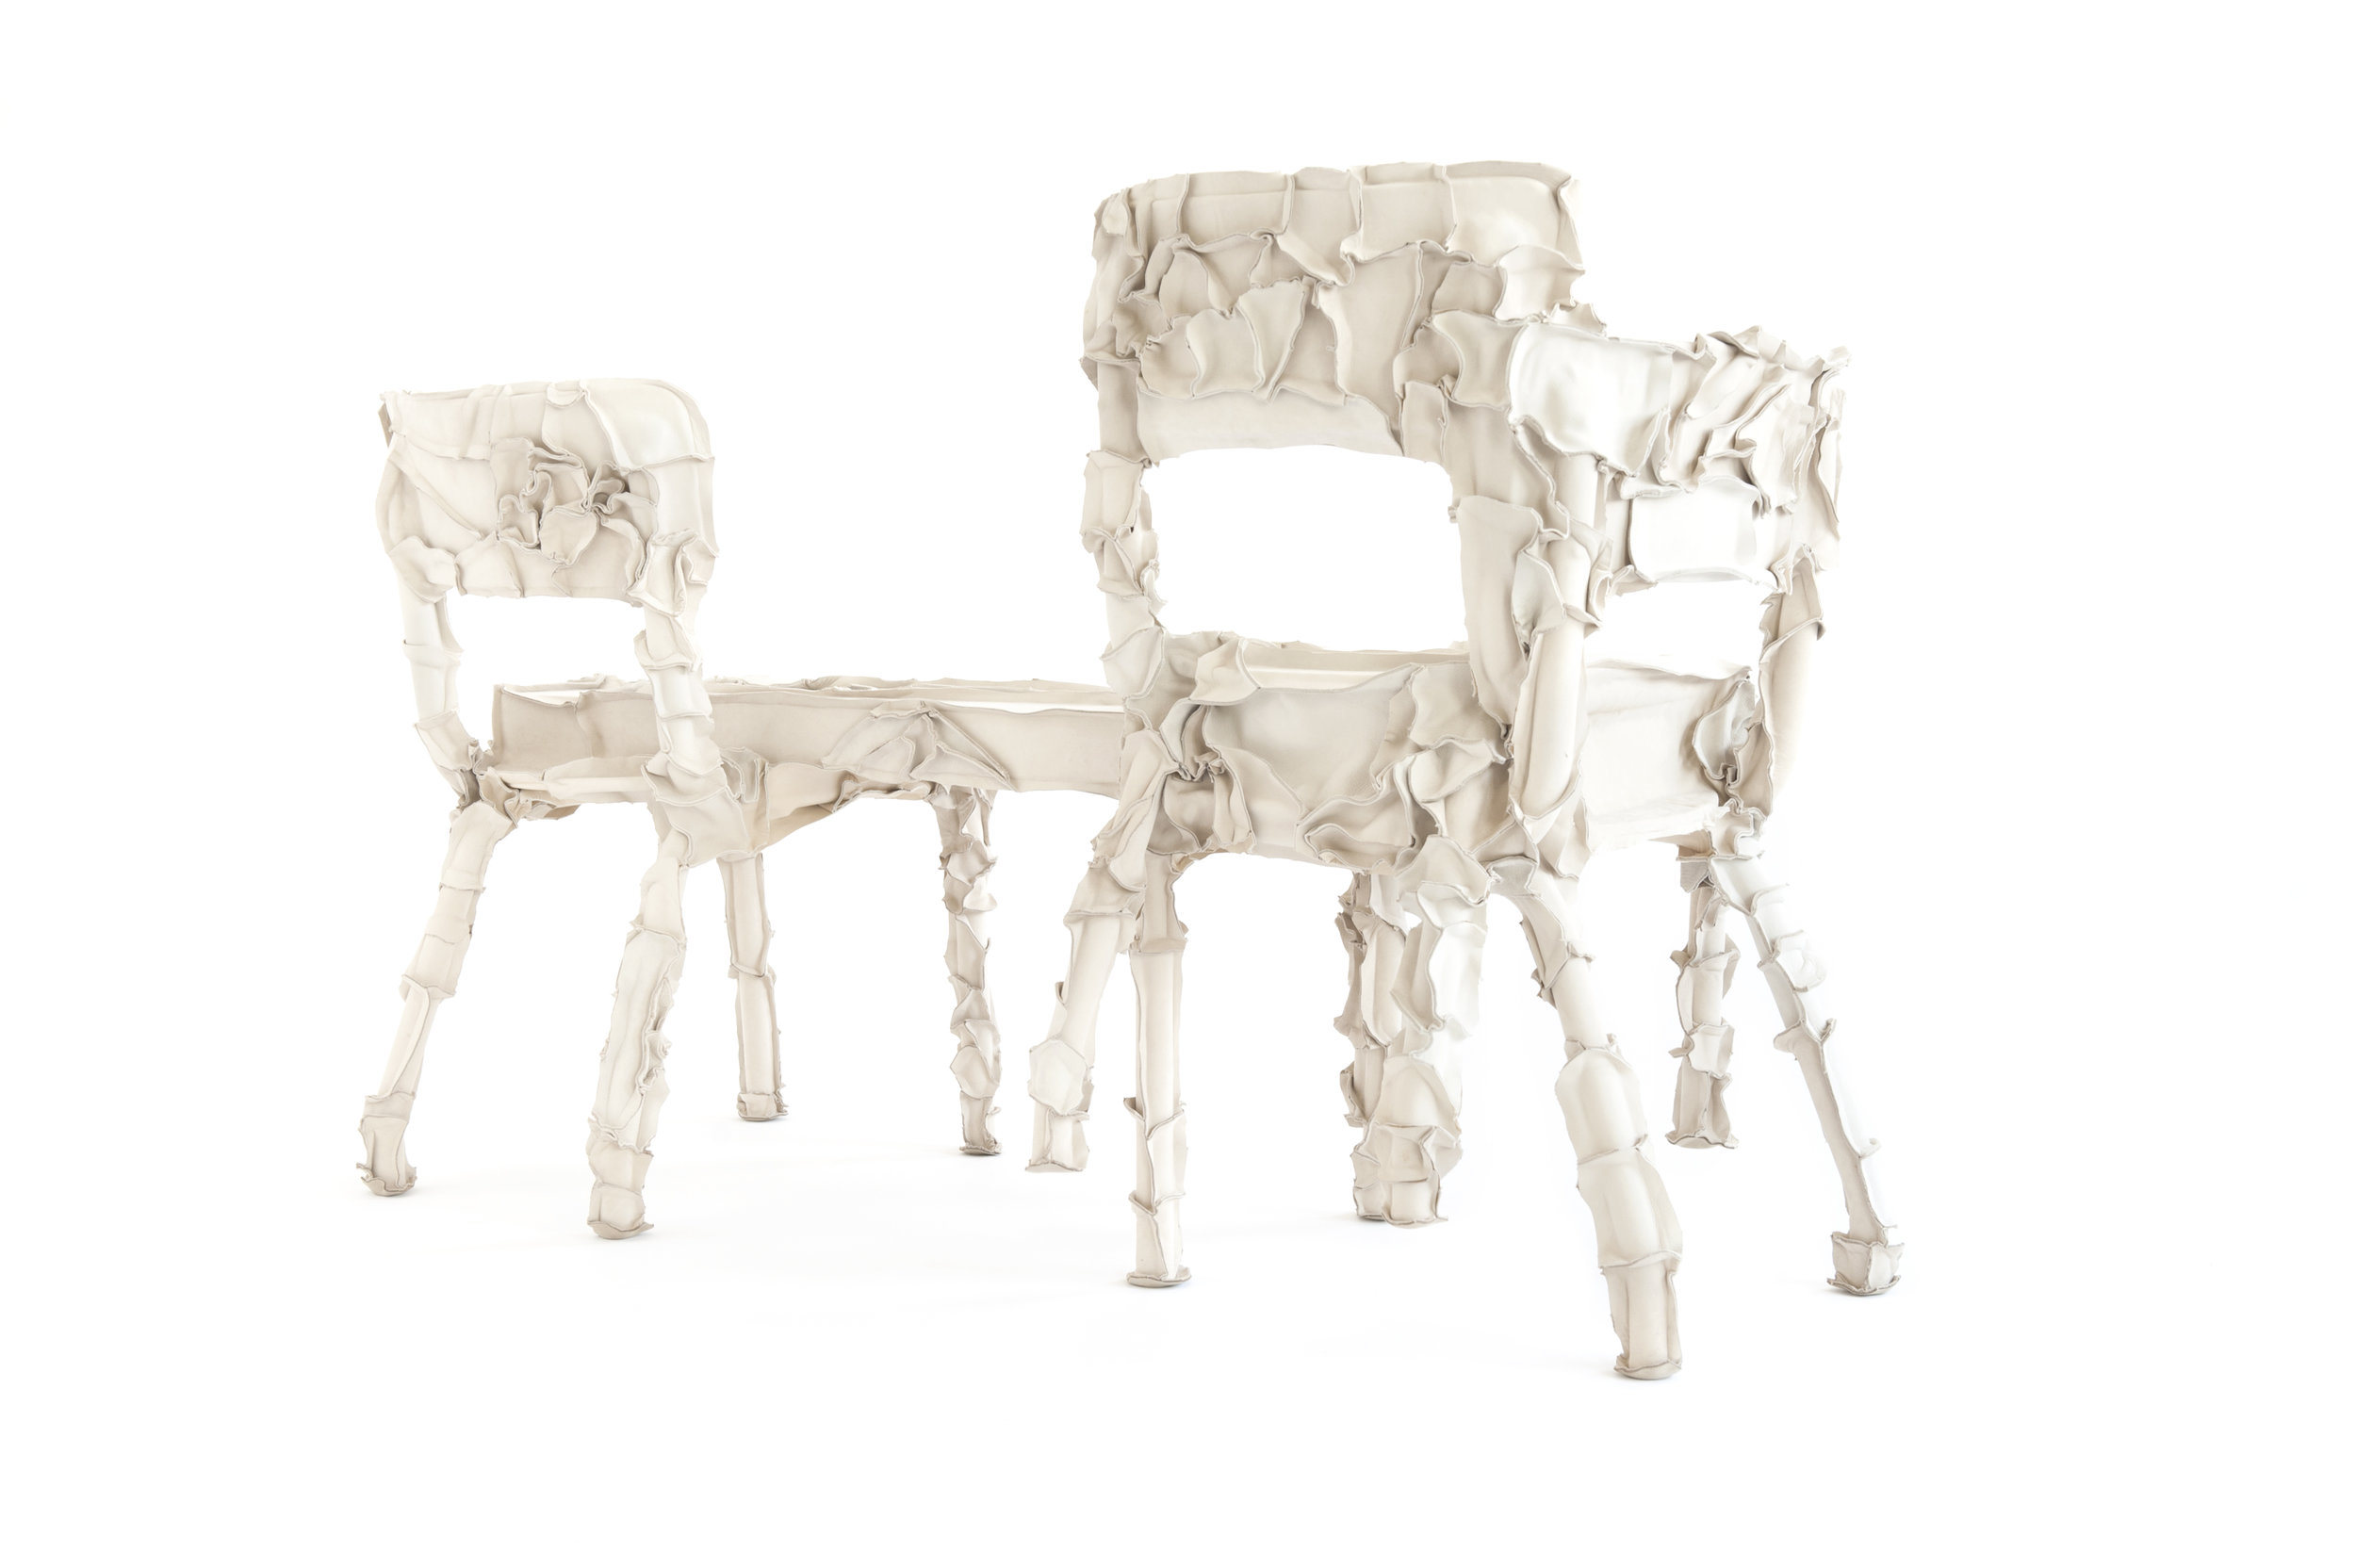 Studio Pepe Heykoop - Skin Collection white bench 2 - PHOTO BY ANNEMARIJNEBAX.jpg